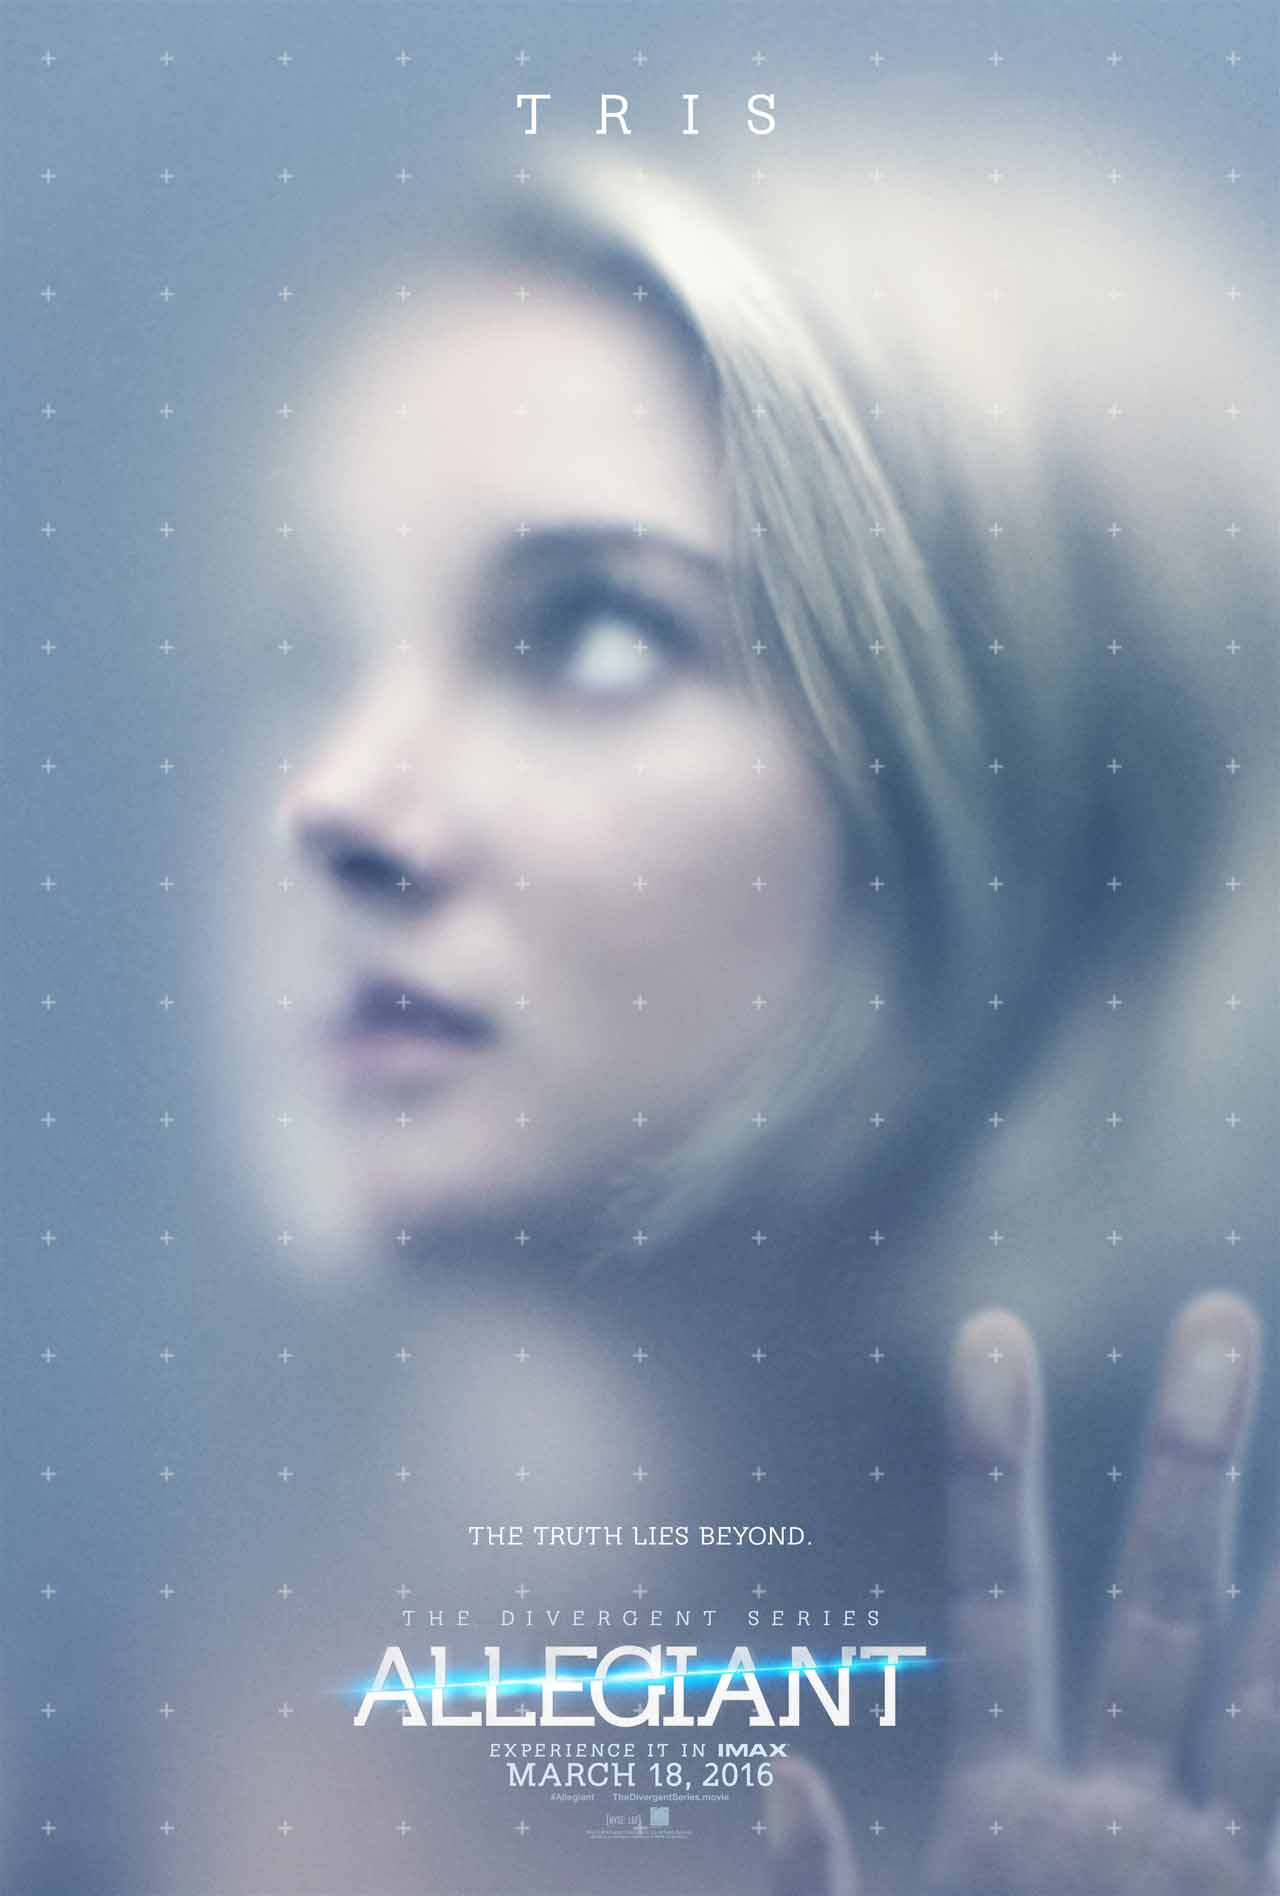 New The Divergent Series: Allegiant Trailer Shows Tris and Four Fighting a New World